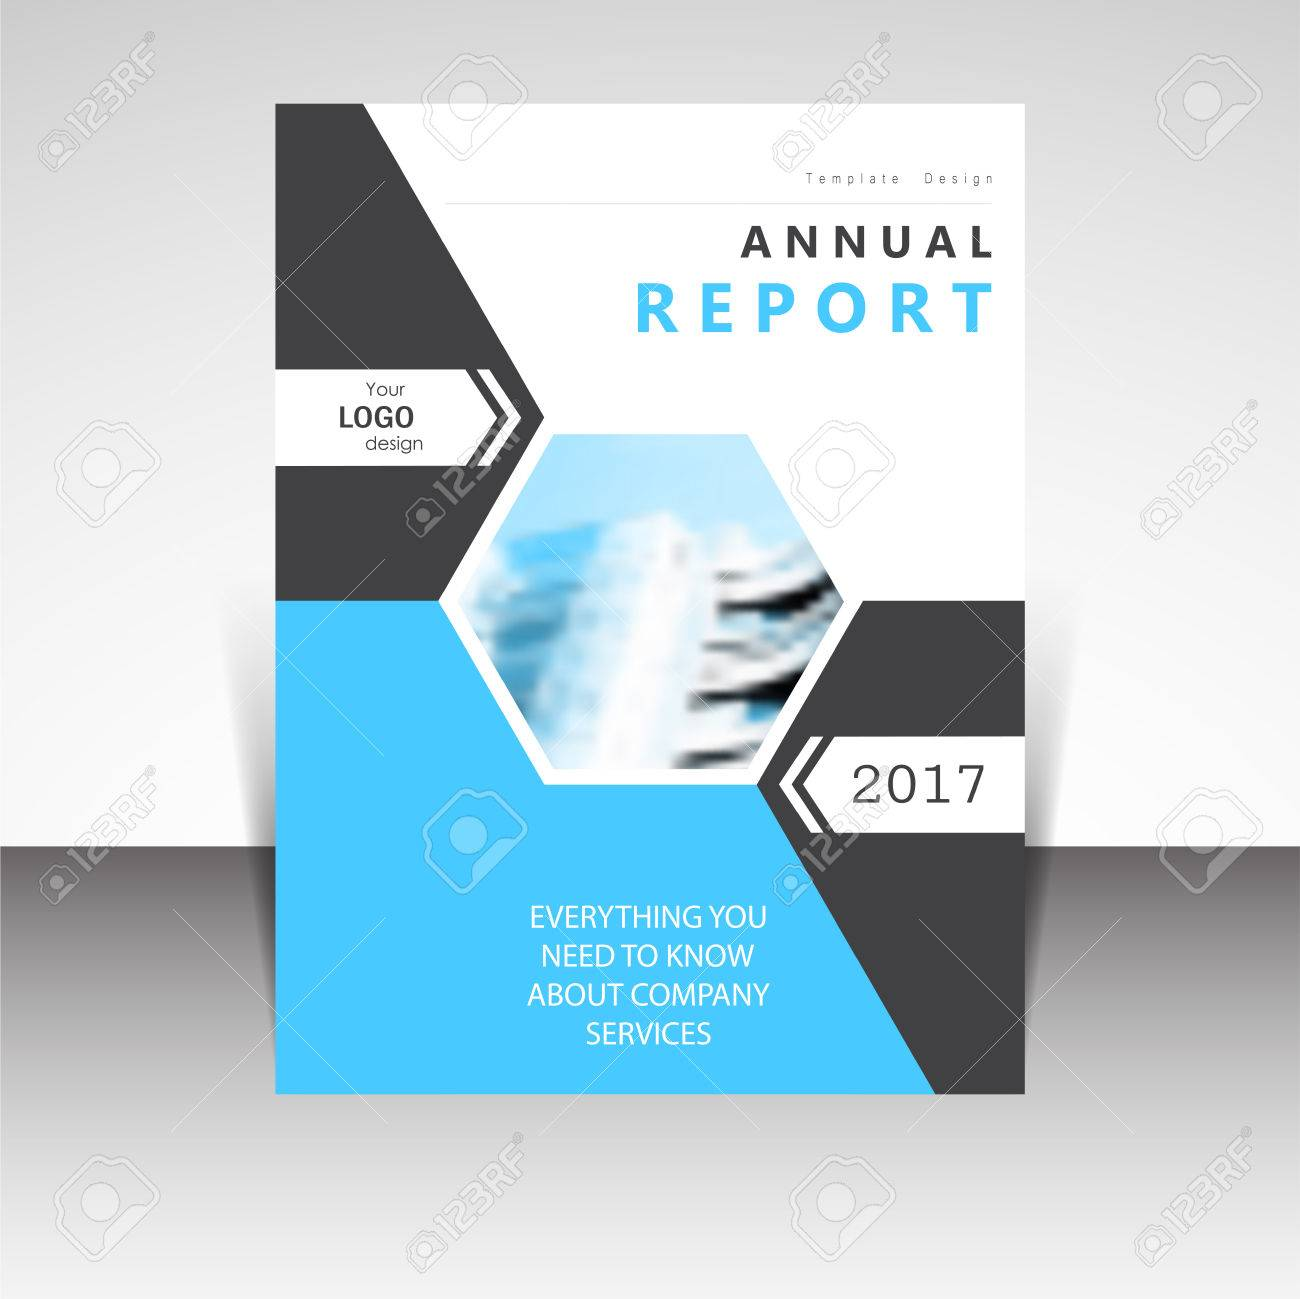 Business Annual Report Brochure Design Vector Illustration  Business     Business annual report brochure design vector illustration  Business  presentation  poster  cover  booklet